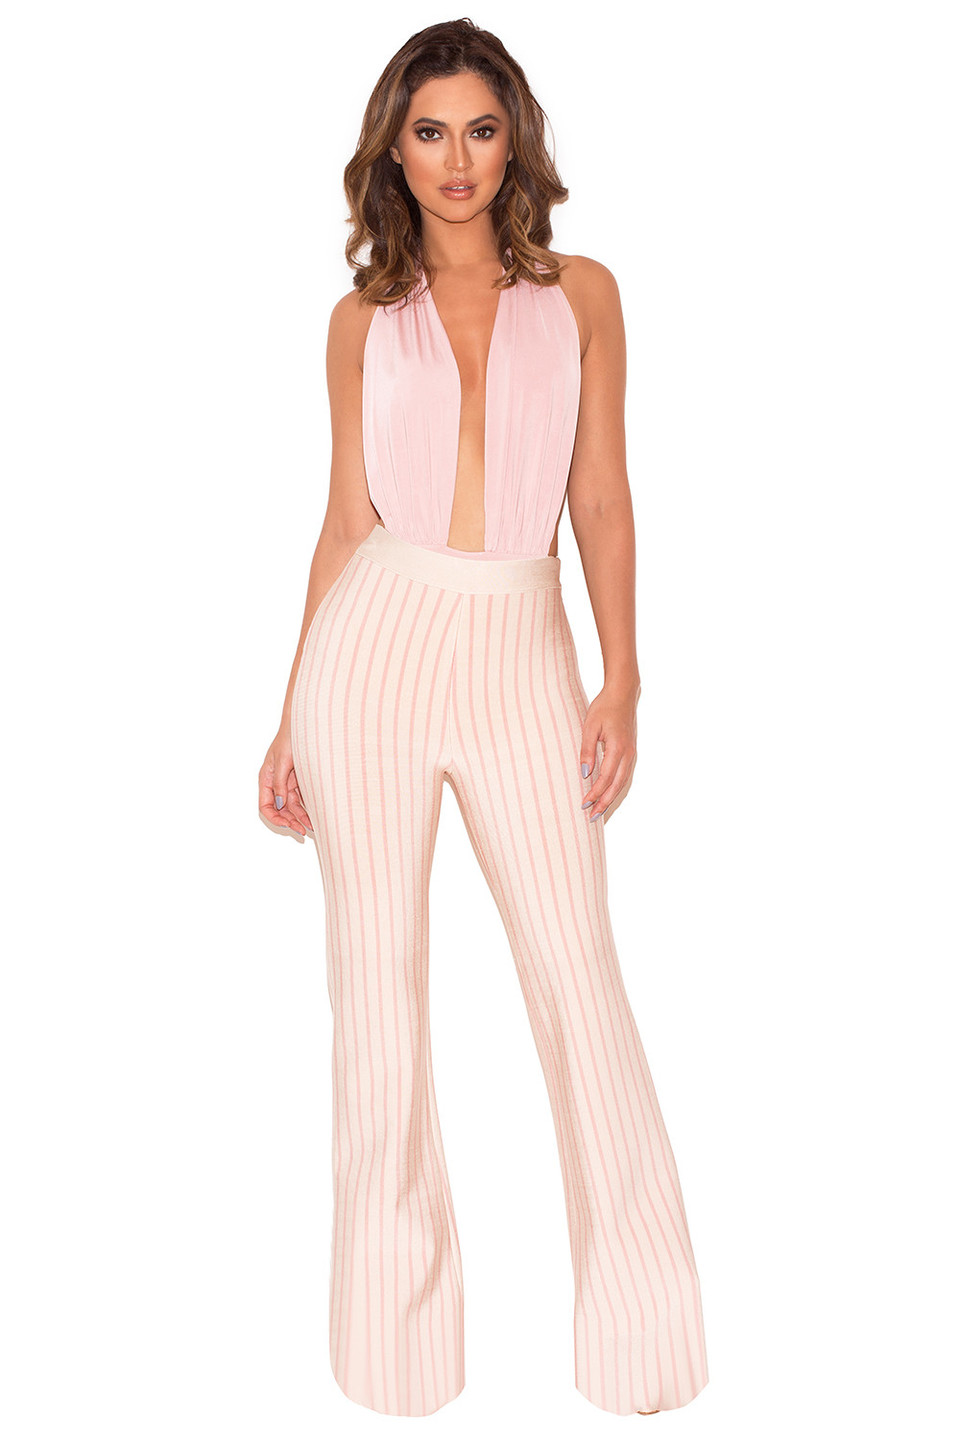 Madera Two Piece Trousers and Bodysuit Set